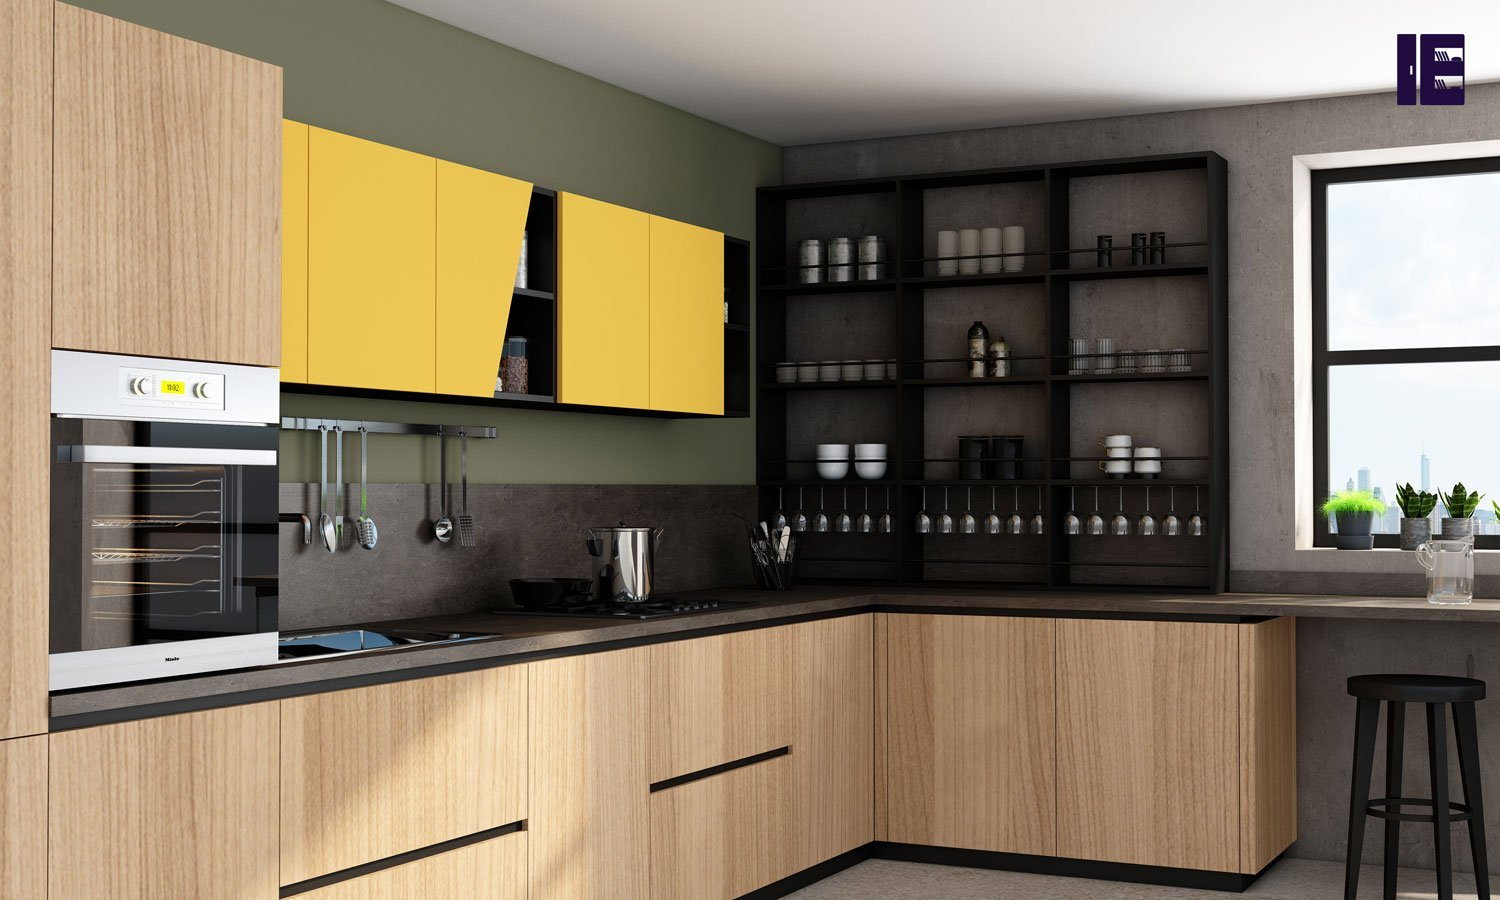 Handleless premiumline kitchen